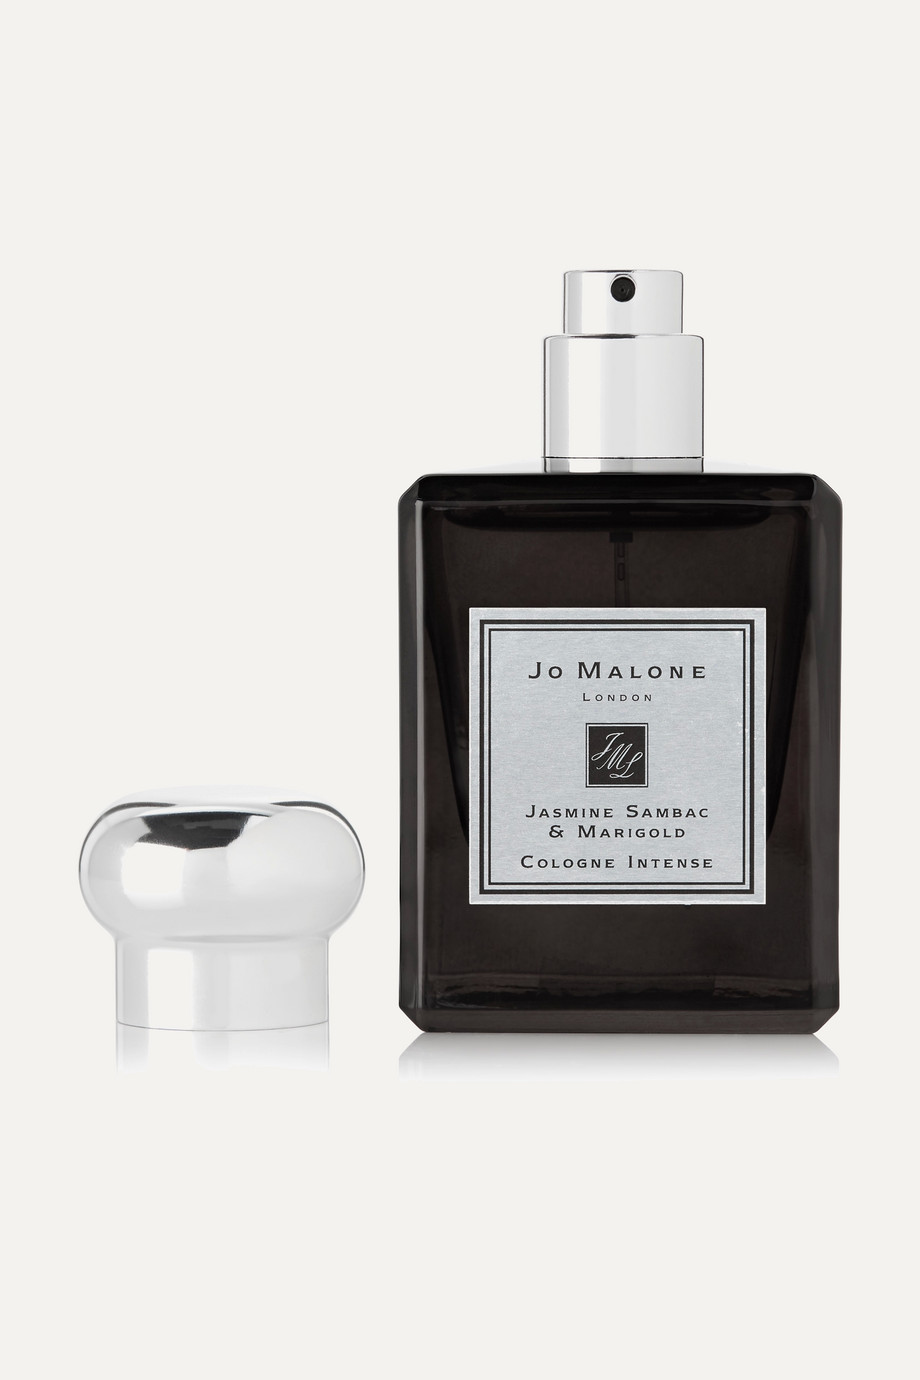 Jo Malone London Jasmine Sambac & Marigold Cologne Intense, 50ml